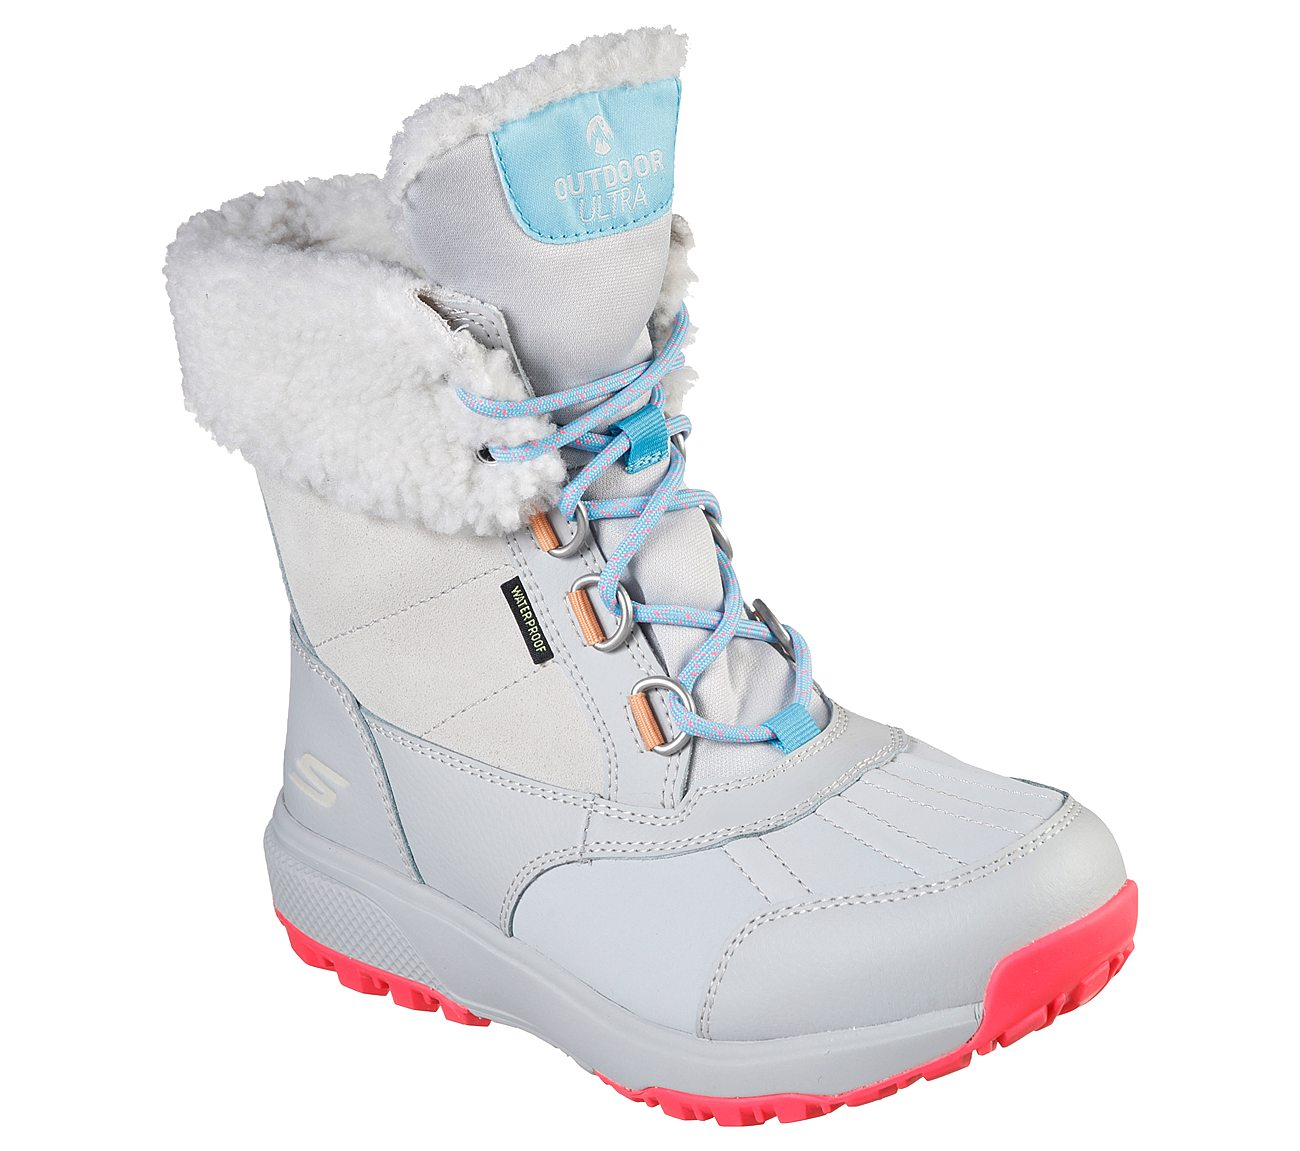 Skechers On the GO Outdoors Ultra - Snow Capped